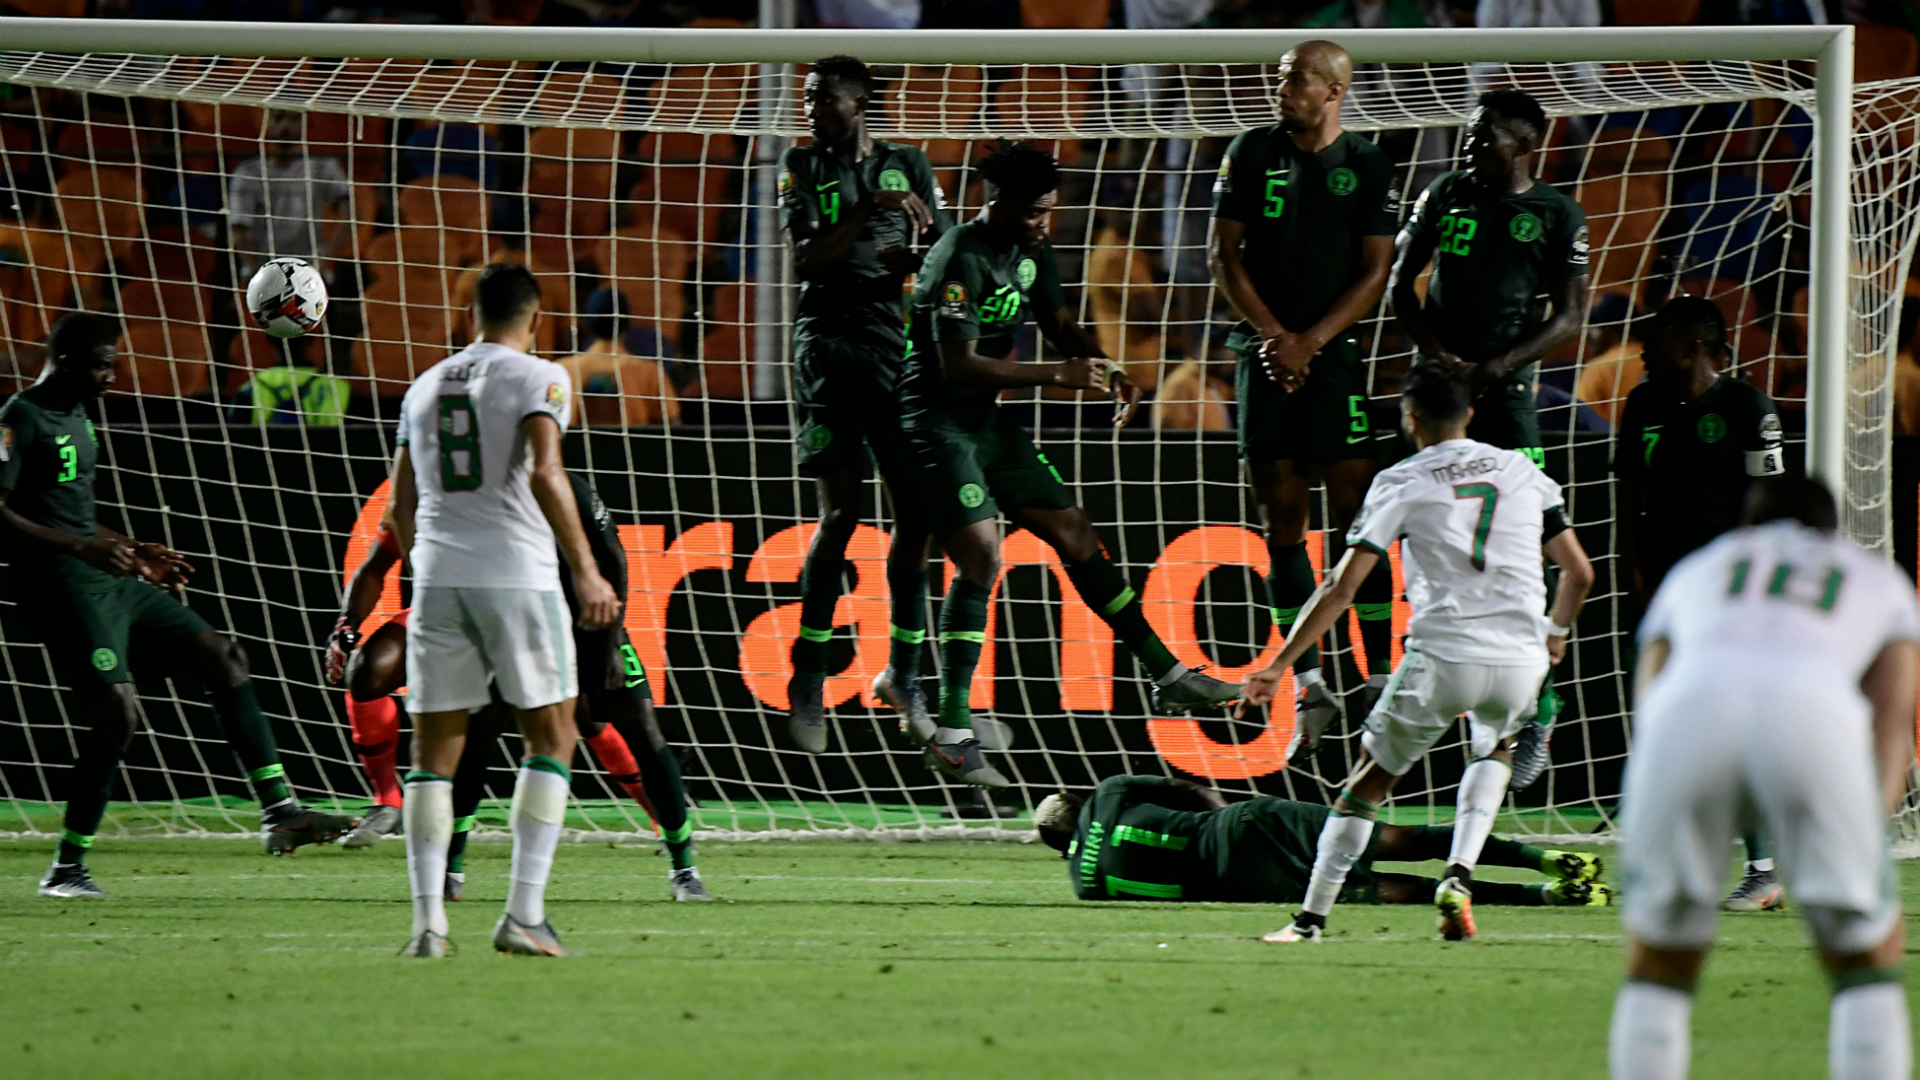 Afcon 2019: Algeria v Nigeria Player Ratings - Super Eagles fail to soar